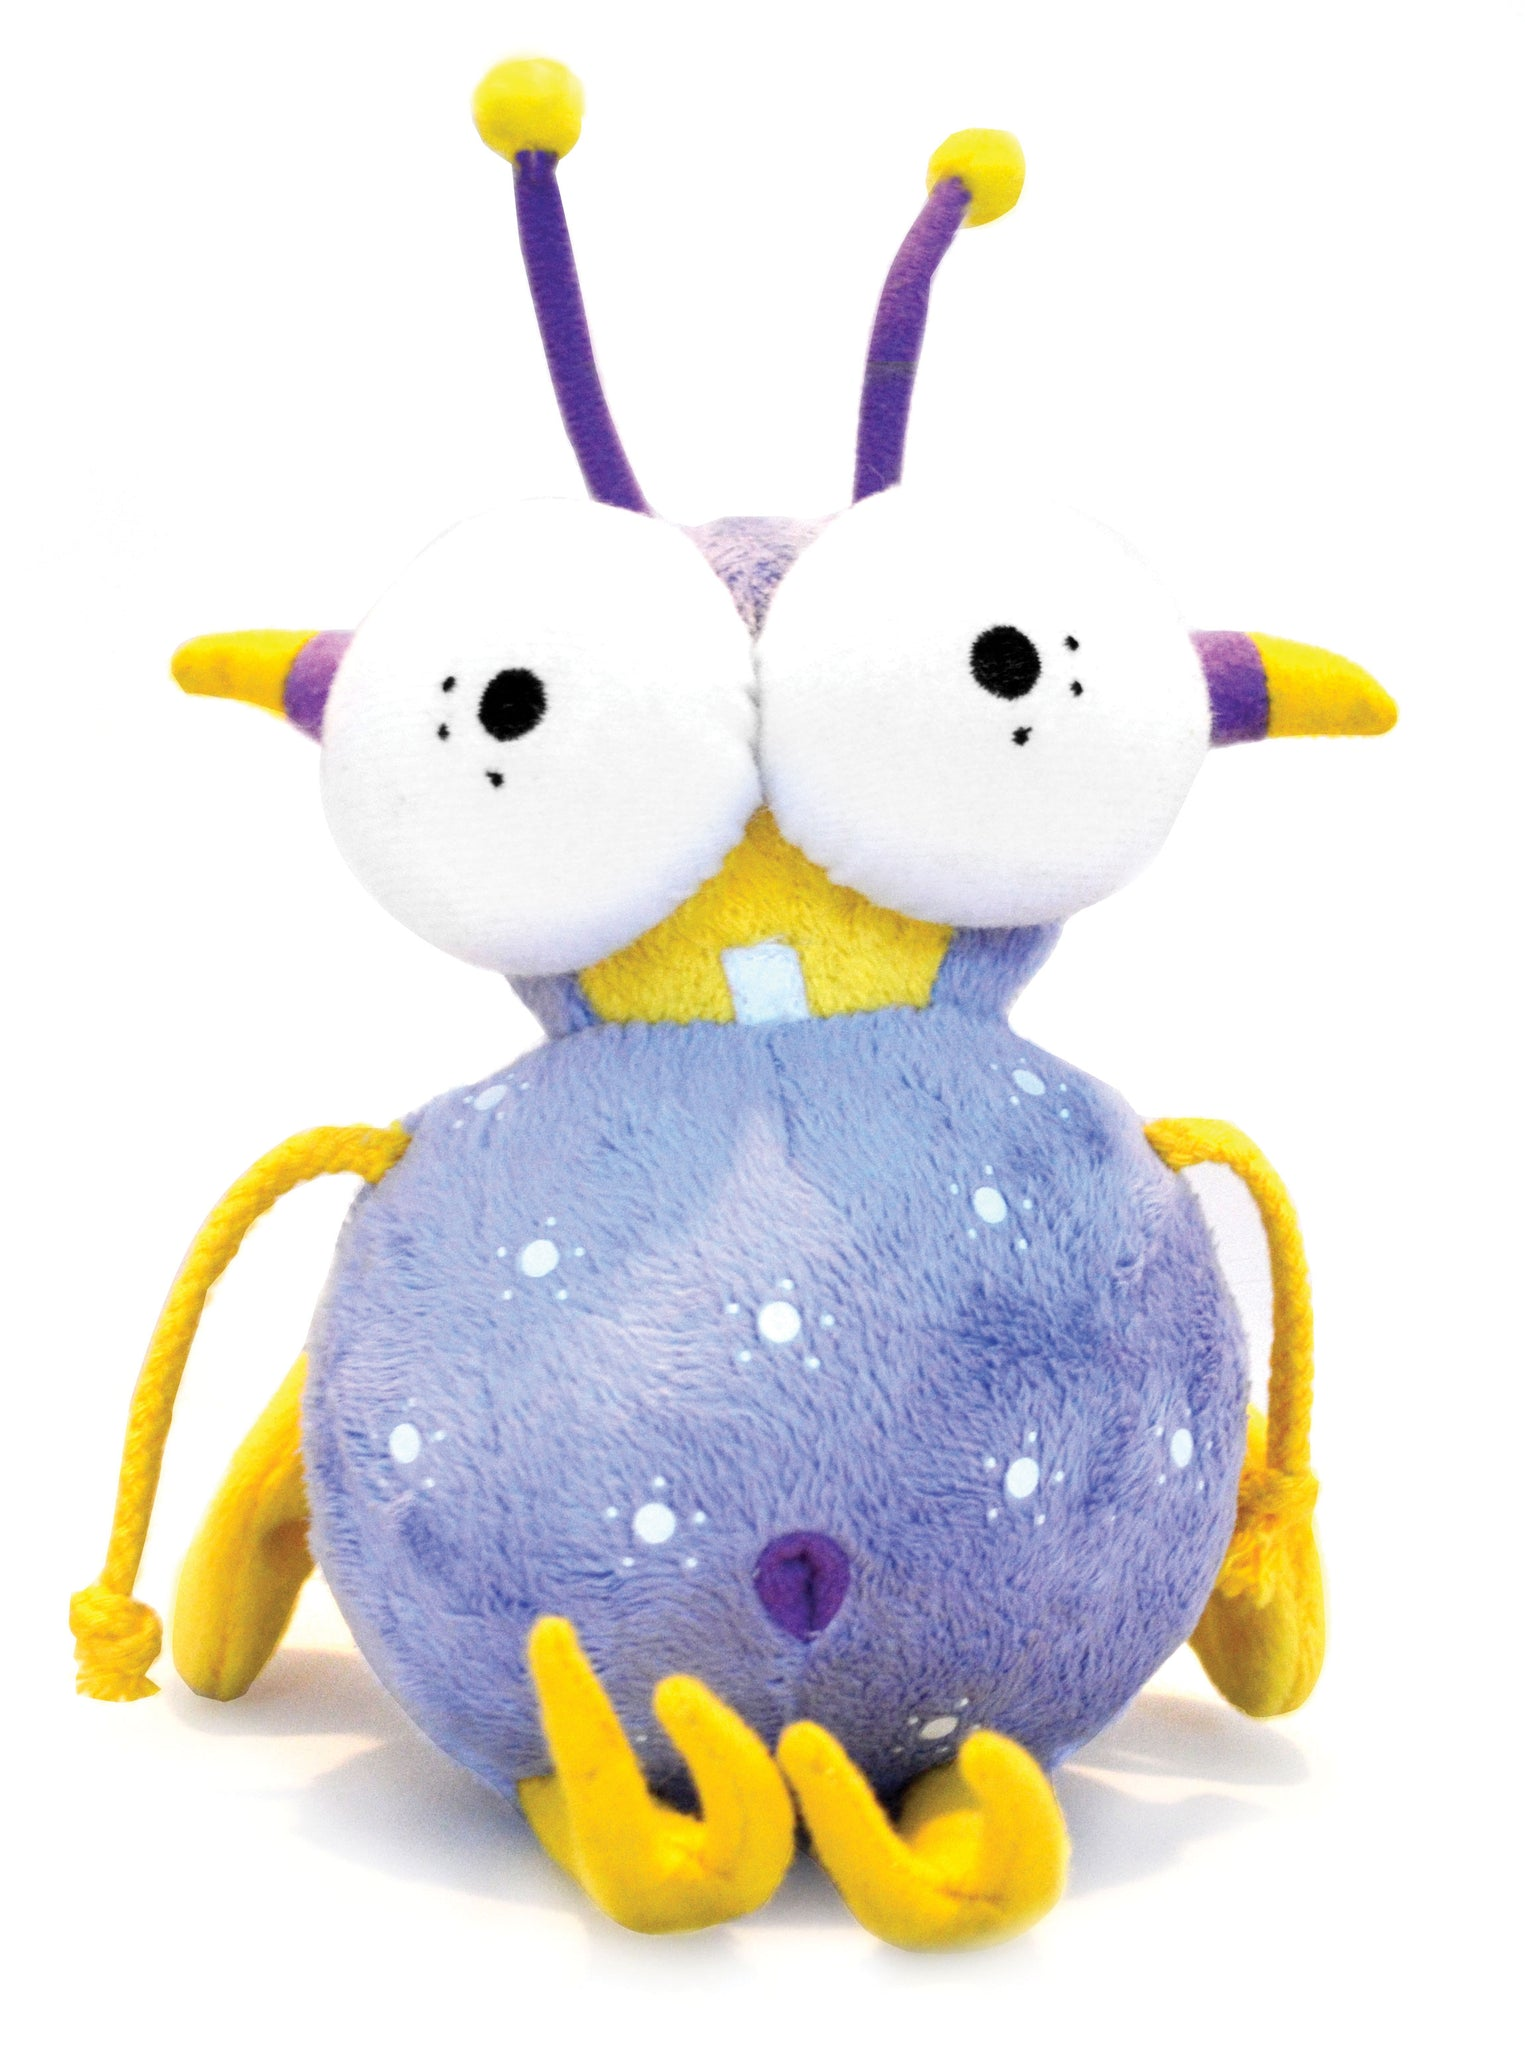 The WorryBug - WorryWoo Plush Toy